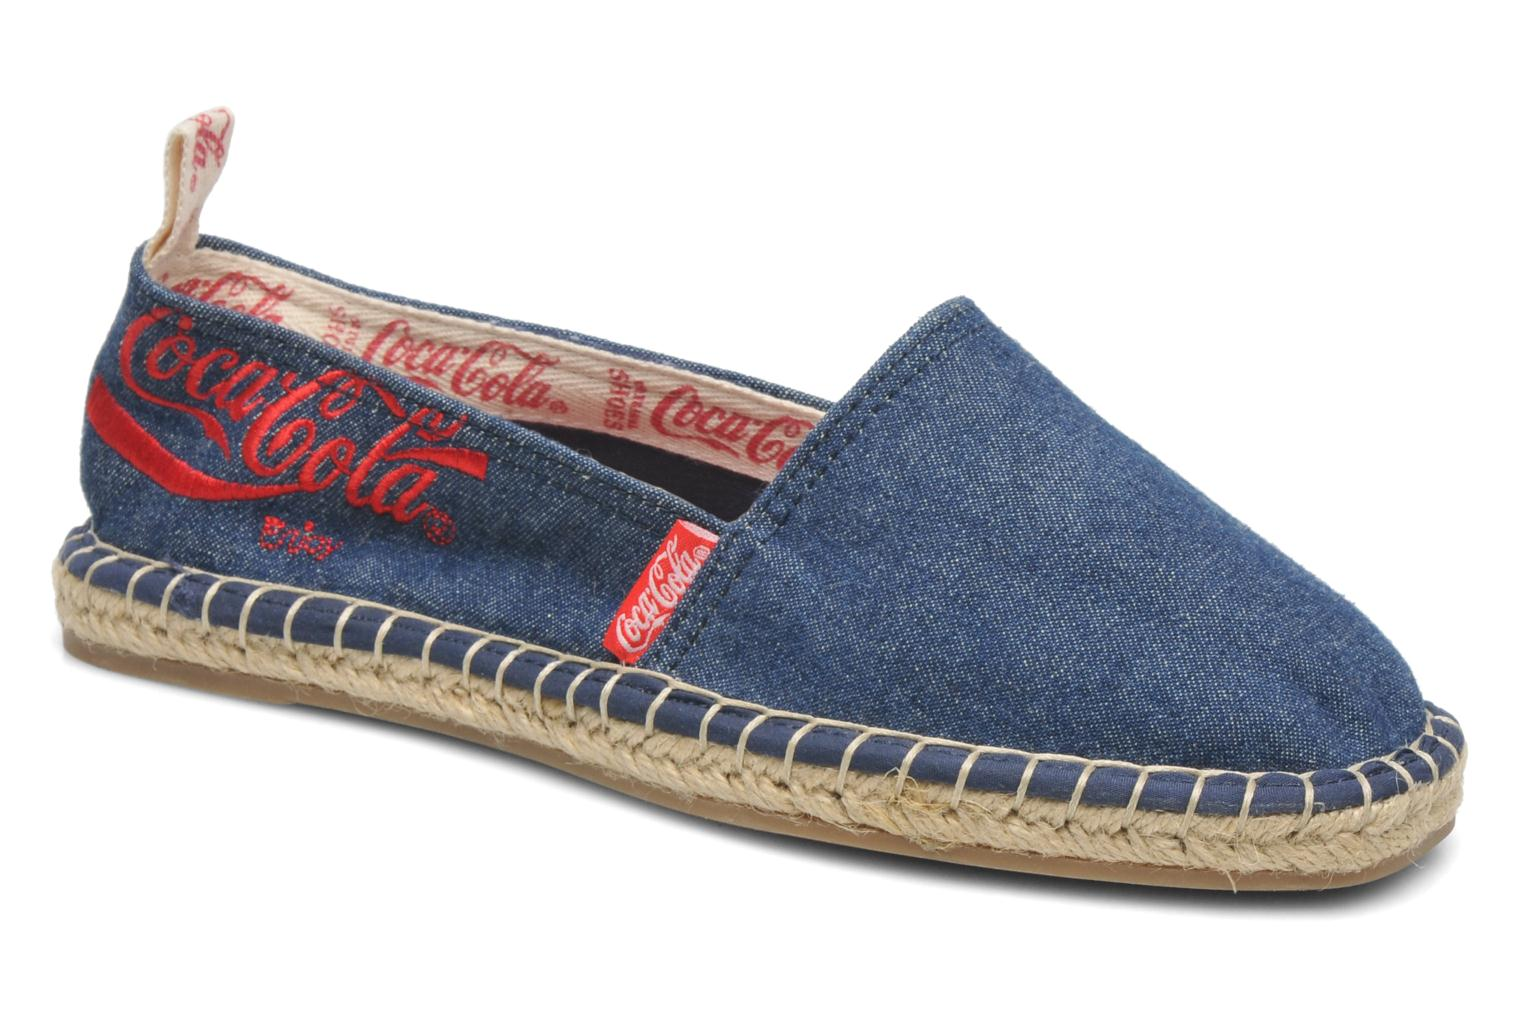 Espadrilles Juta Classic W by Coca-cola shoes